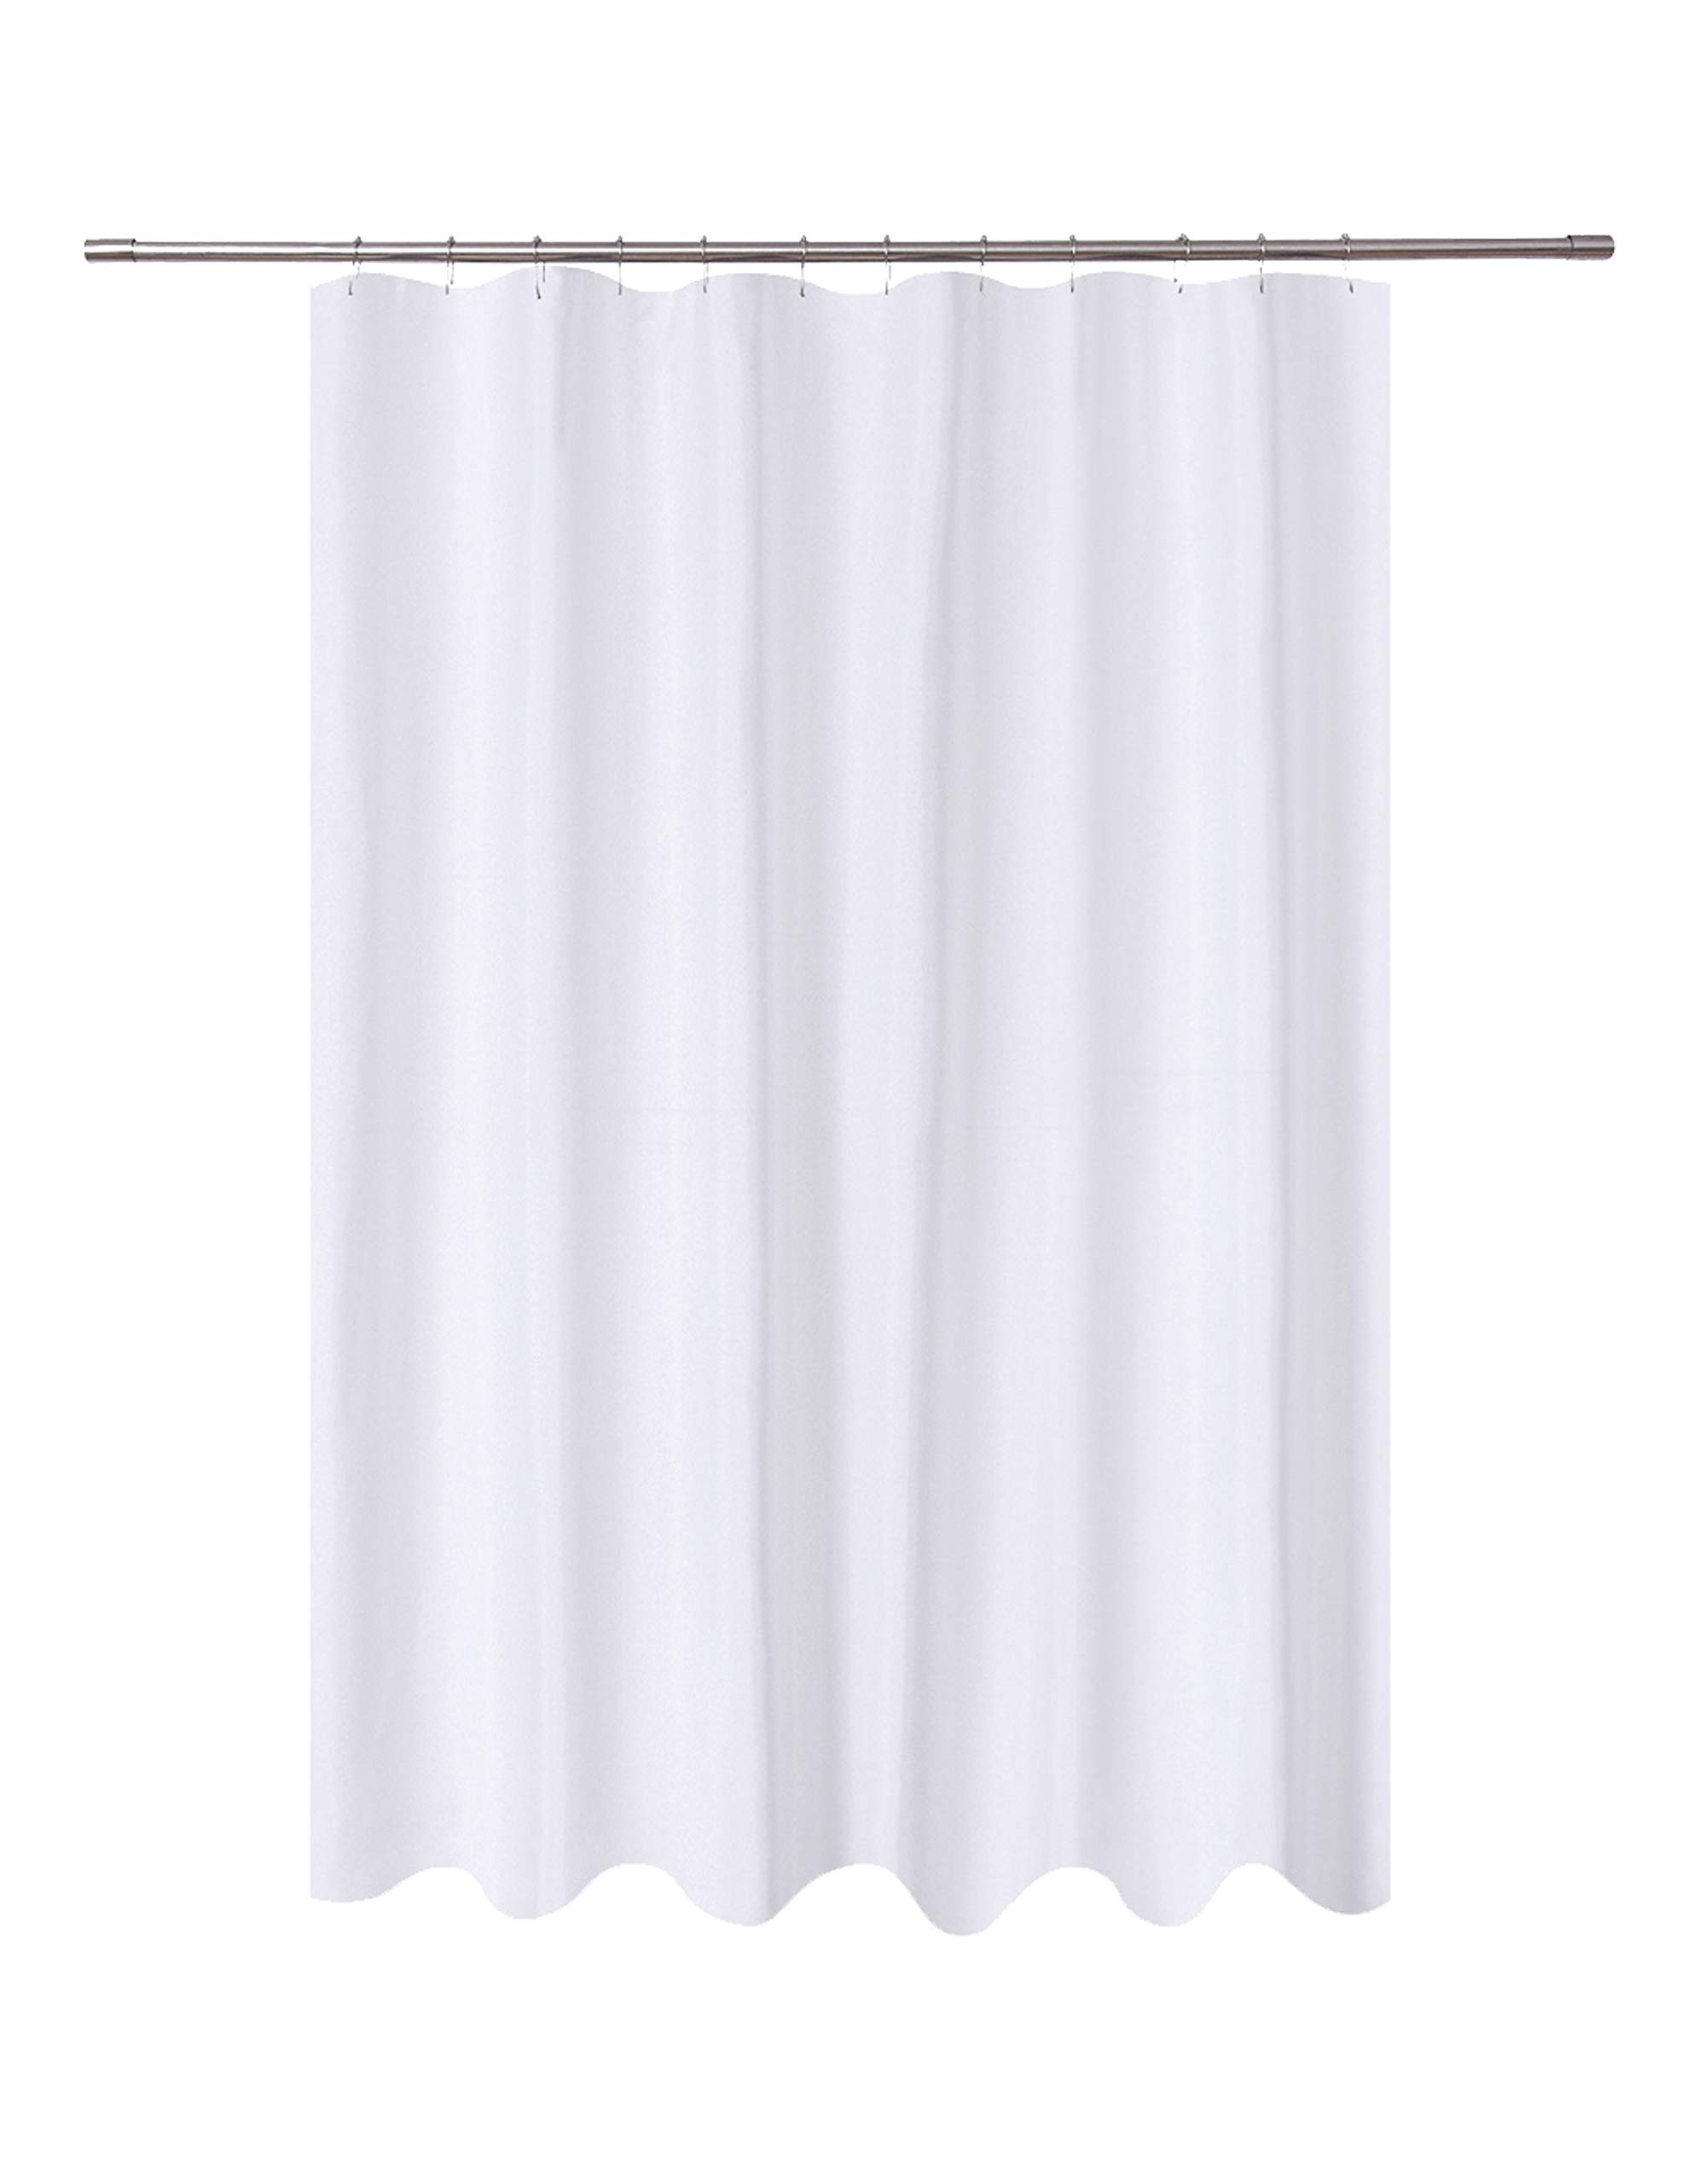 N&Y HOME Fabric Shower Curtain Liner White Extra Long 72 x 84 inch, Hotel Quality, Mildew Resistant, Washable, Water repellent, Spa Bathroom Curtains with Grommets